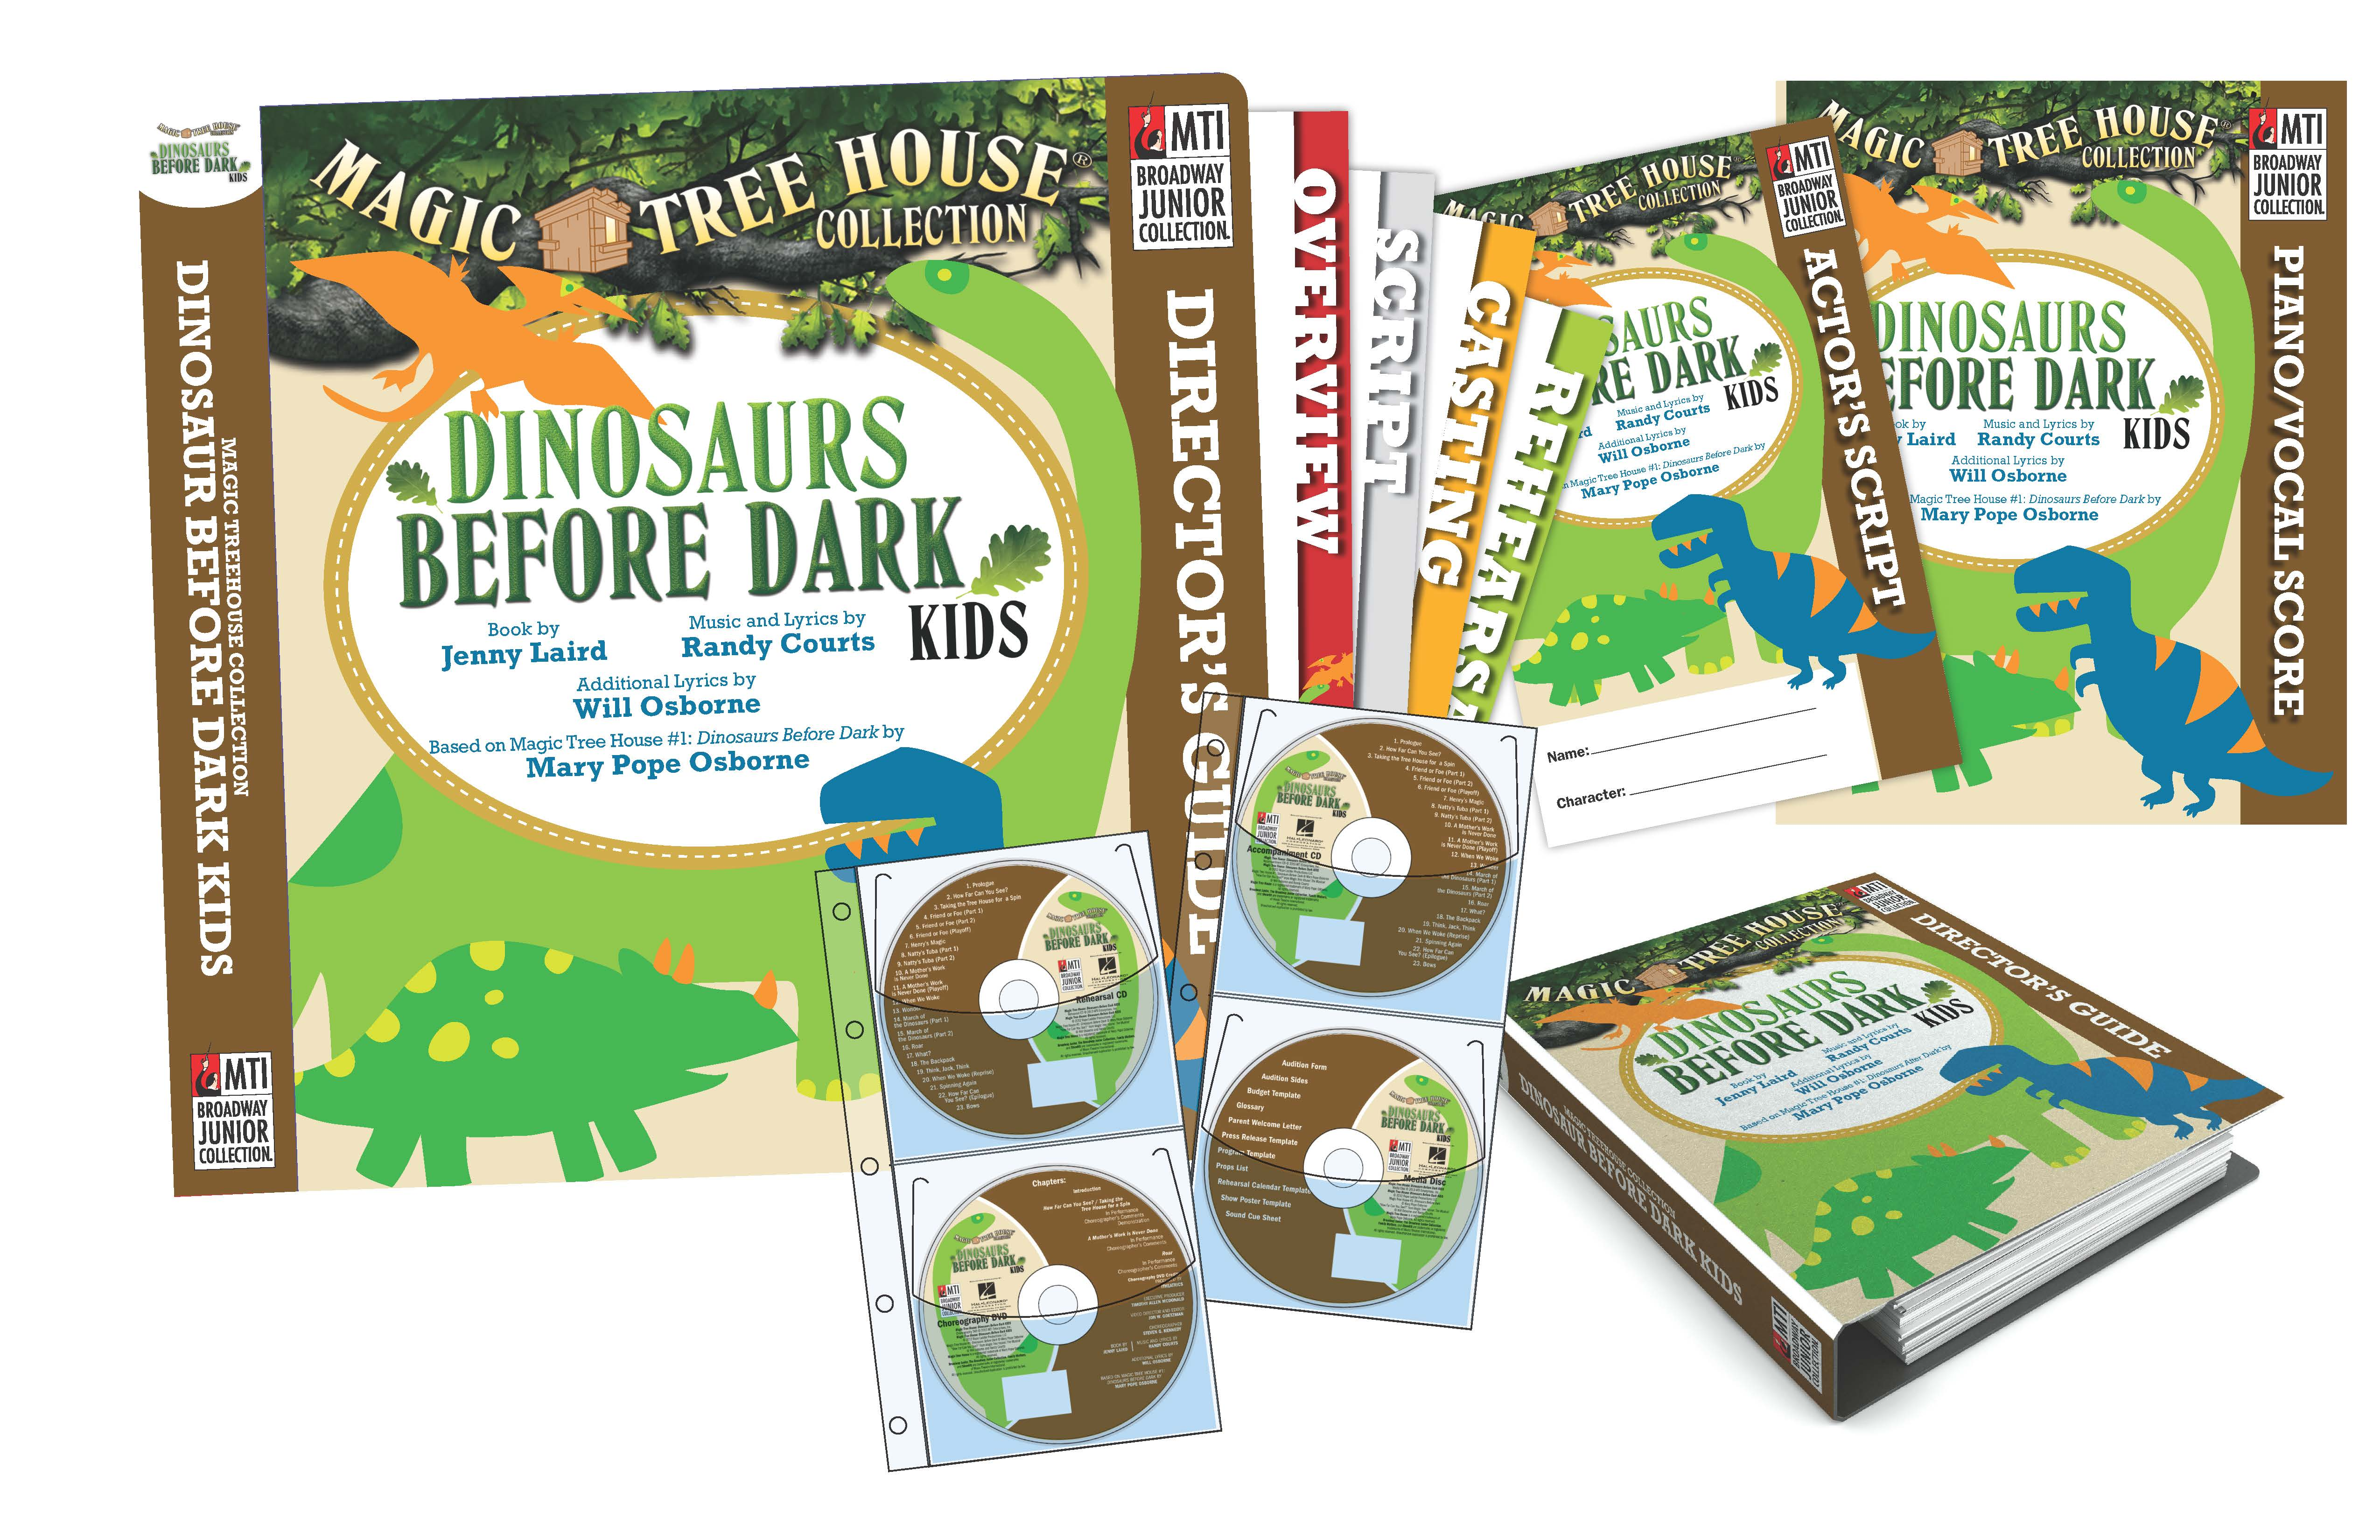 Magic Tree House Dinosaurs Before Dark Kids